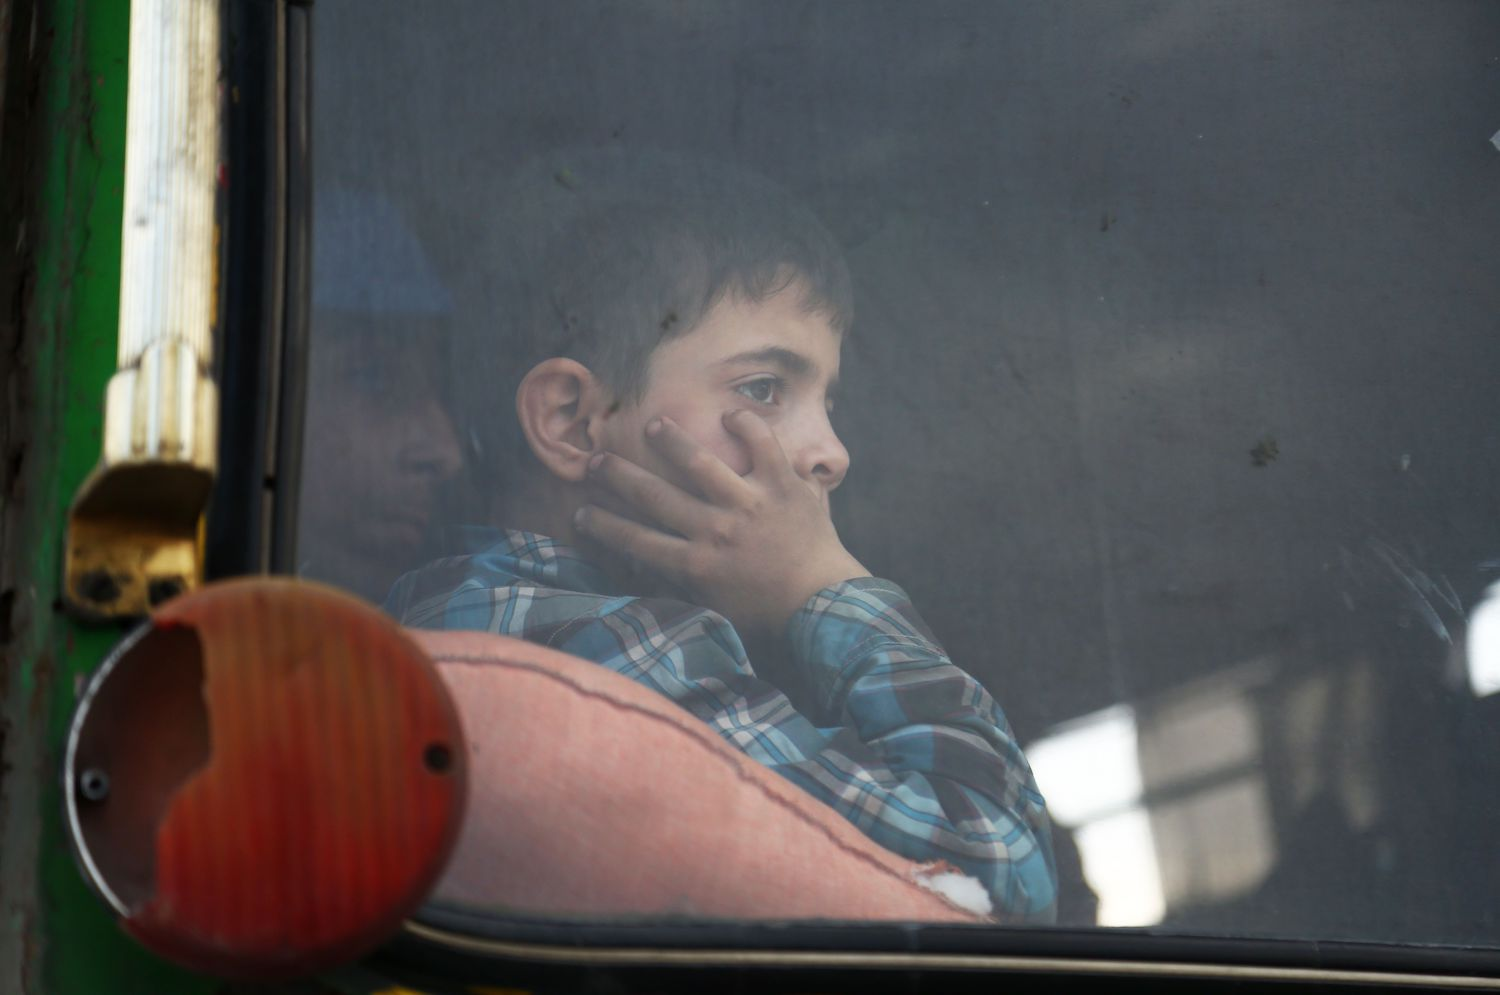 A child looks out of the window as buses carrying Jaish al-Islam fighters and their families from their former rebel bastion of Douma, arrive at the Abu al-Zindeen checkpoint controlled by Turkish-backed rebel fighters near the northern Syrian town of al-Bab, on April 12, 2018. Rebels in Syria's Eastern Ghouta surrendered their heavy weapons and their leader left the enclave, a monitor said, signalling the end of one of the bloodiest assaults of Syria's seven-year war. / AFP PHOTO / Nazeer al-Khatib        (Photo credit should read NAZEER AL-KHATIB/AFP/Getty Images)